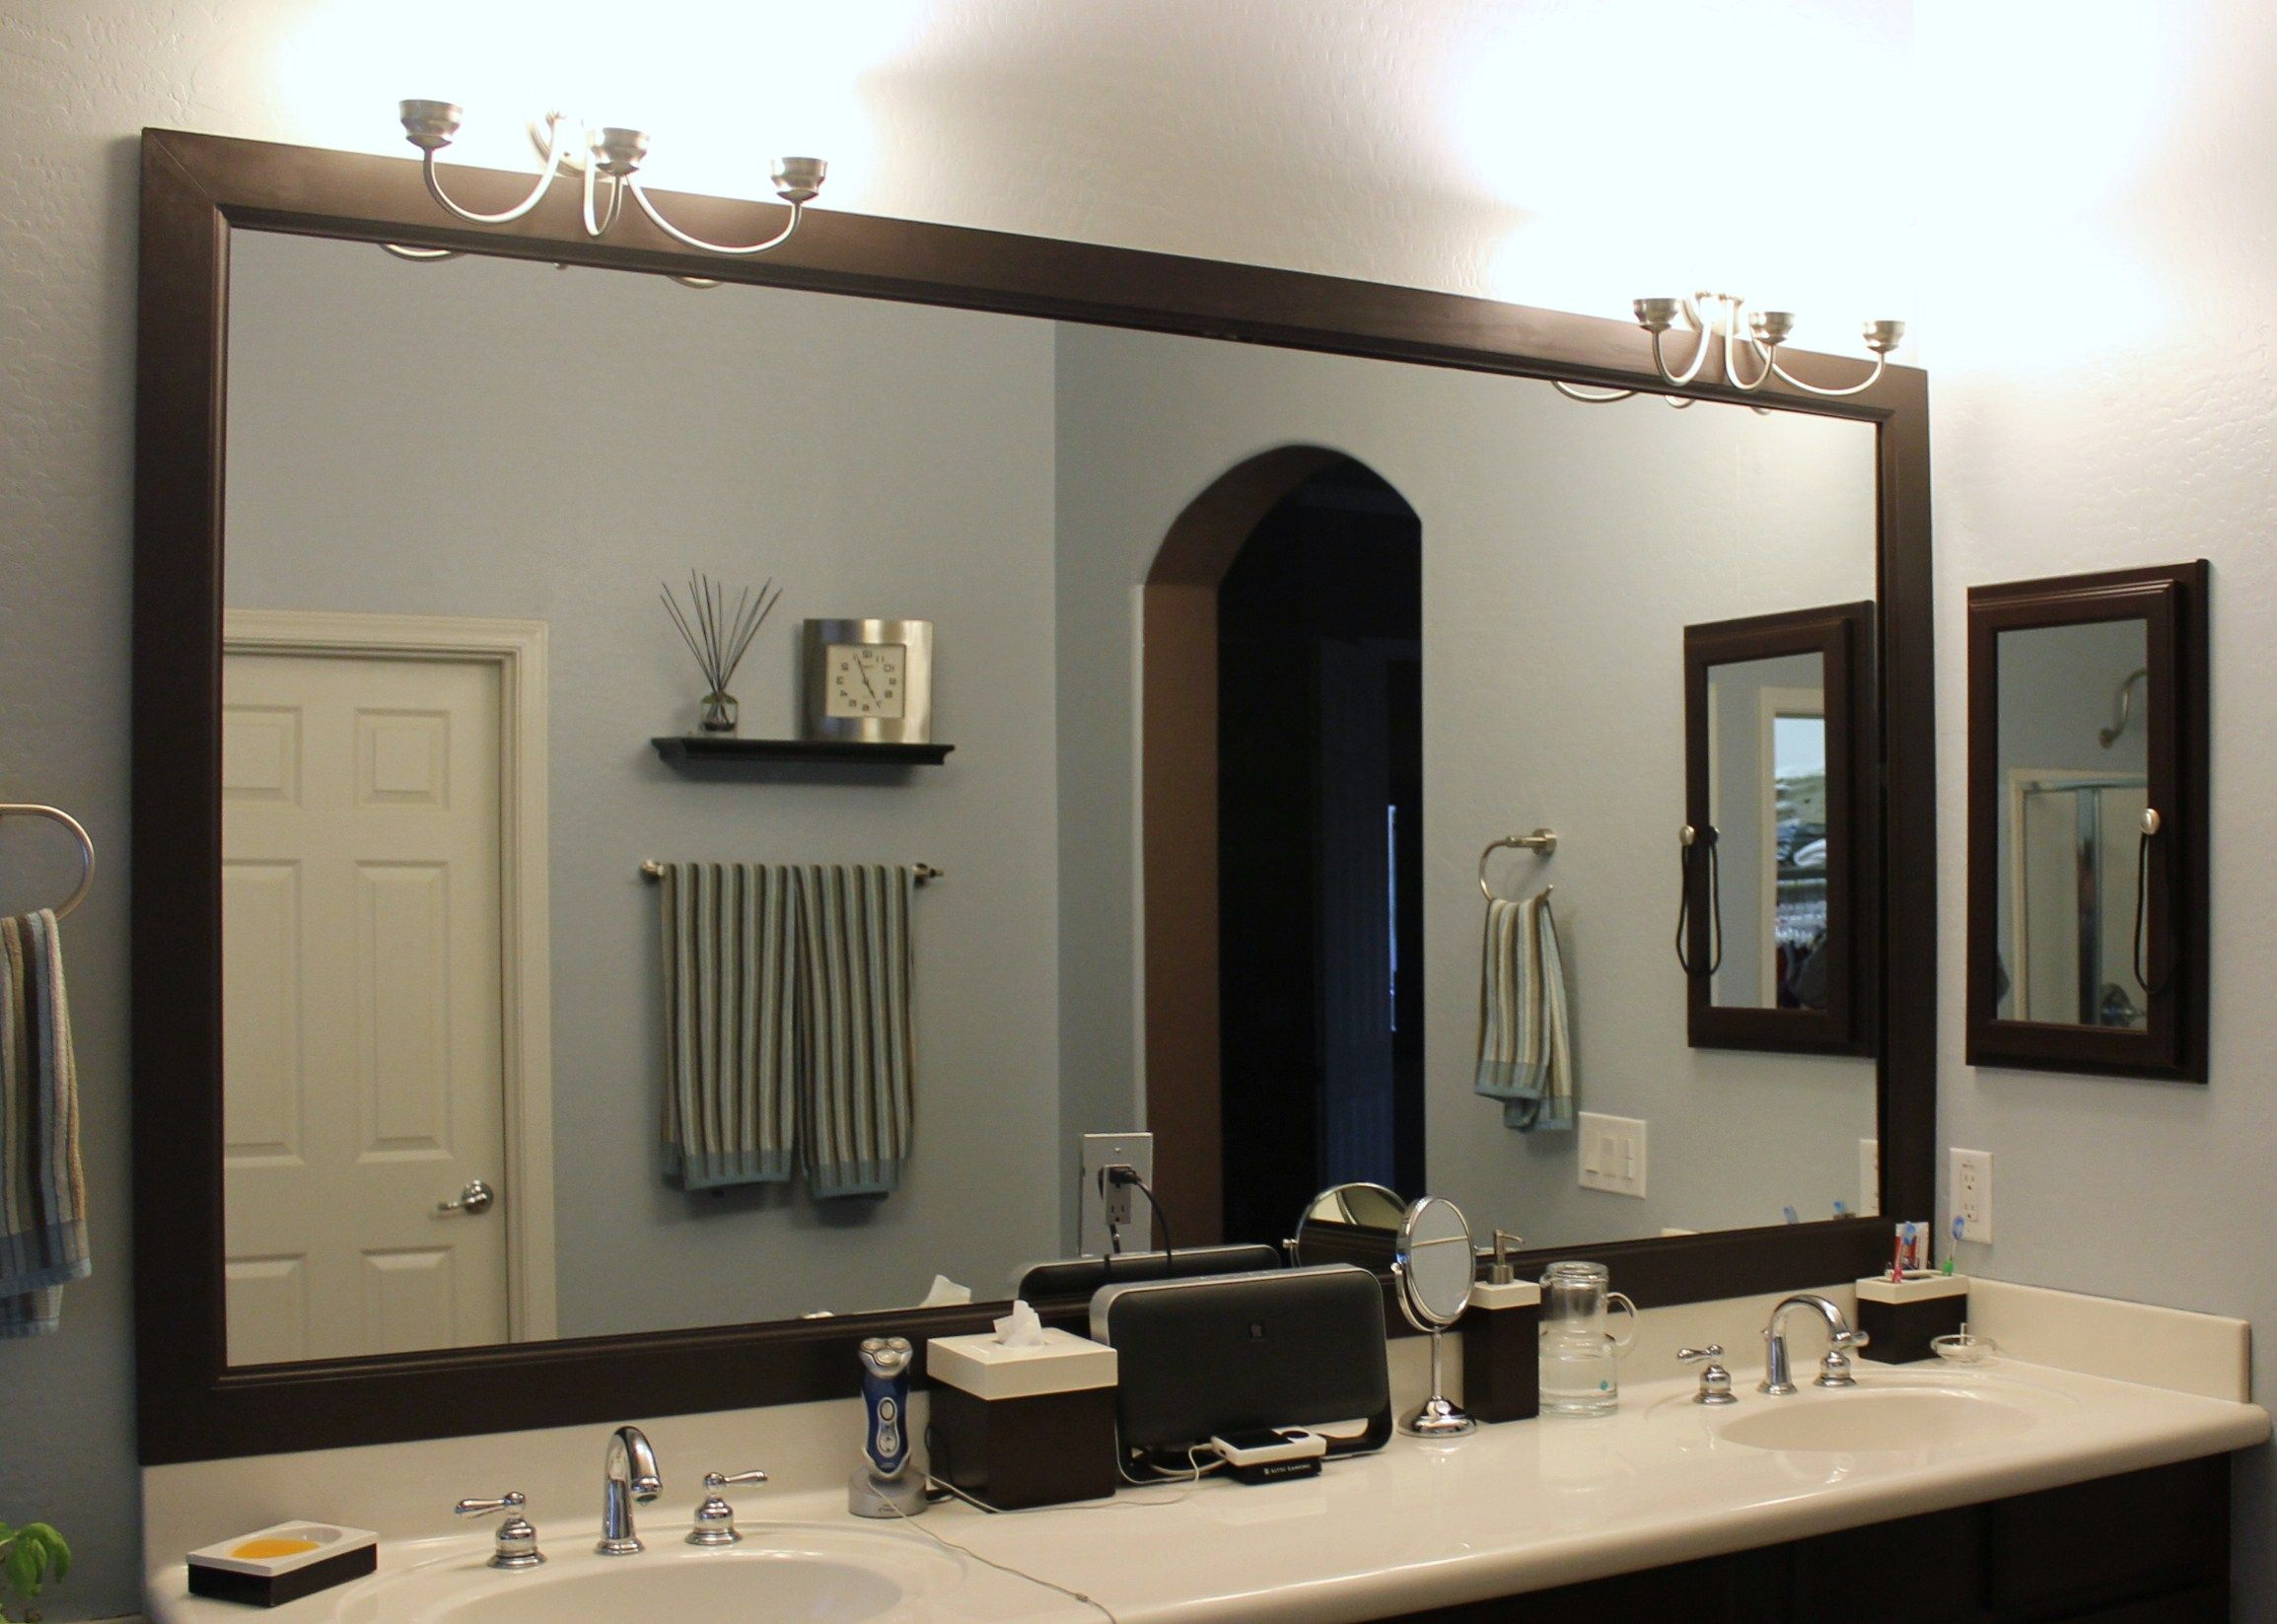 diy bathroom mirror frame bathroom ideas pinterest